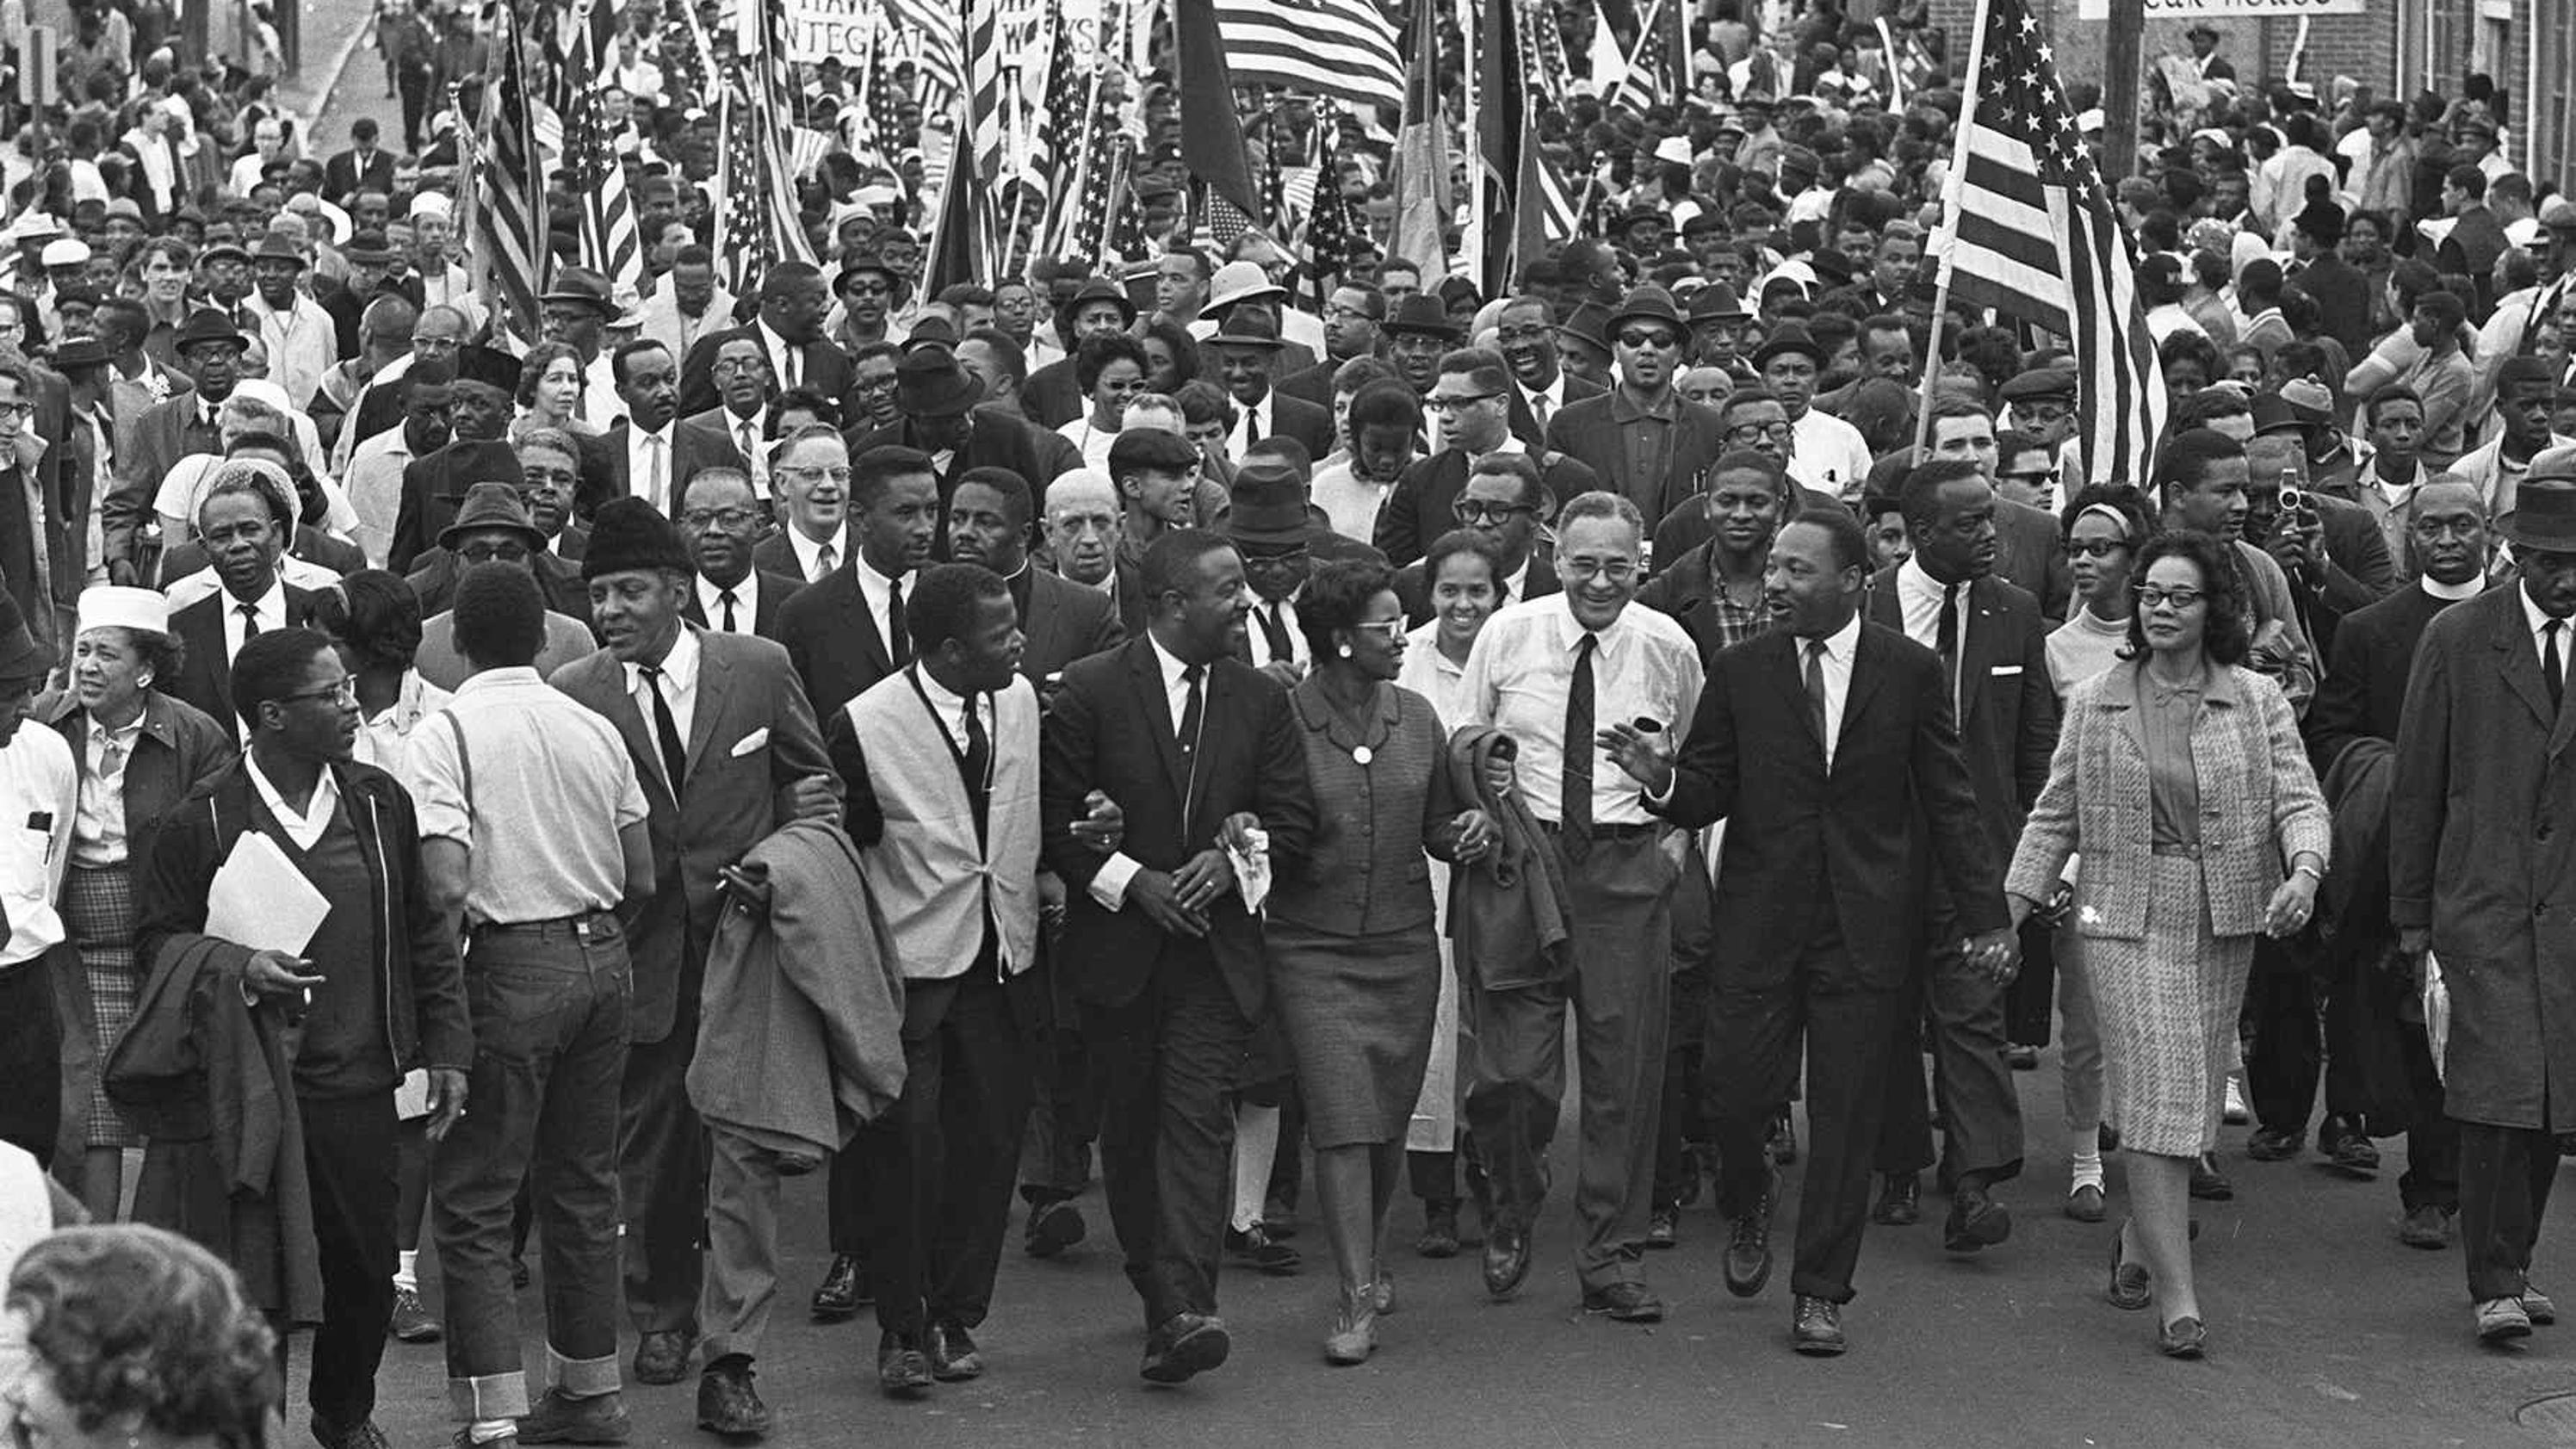 montgomery selma sunday bloody marches timeline history story